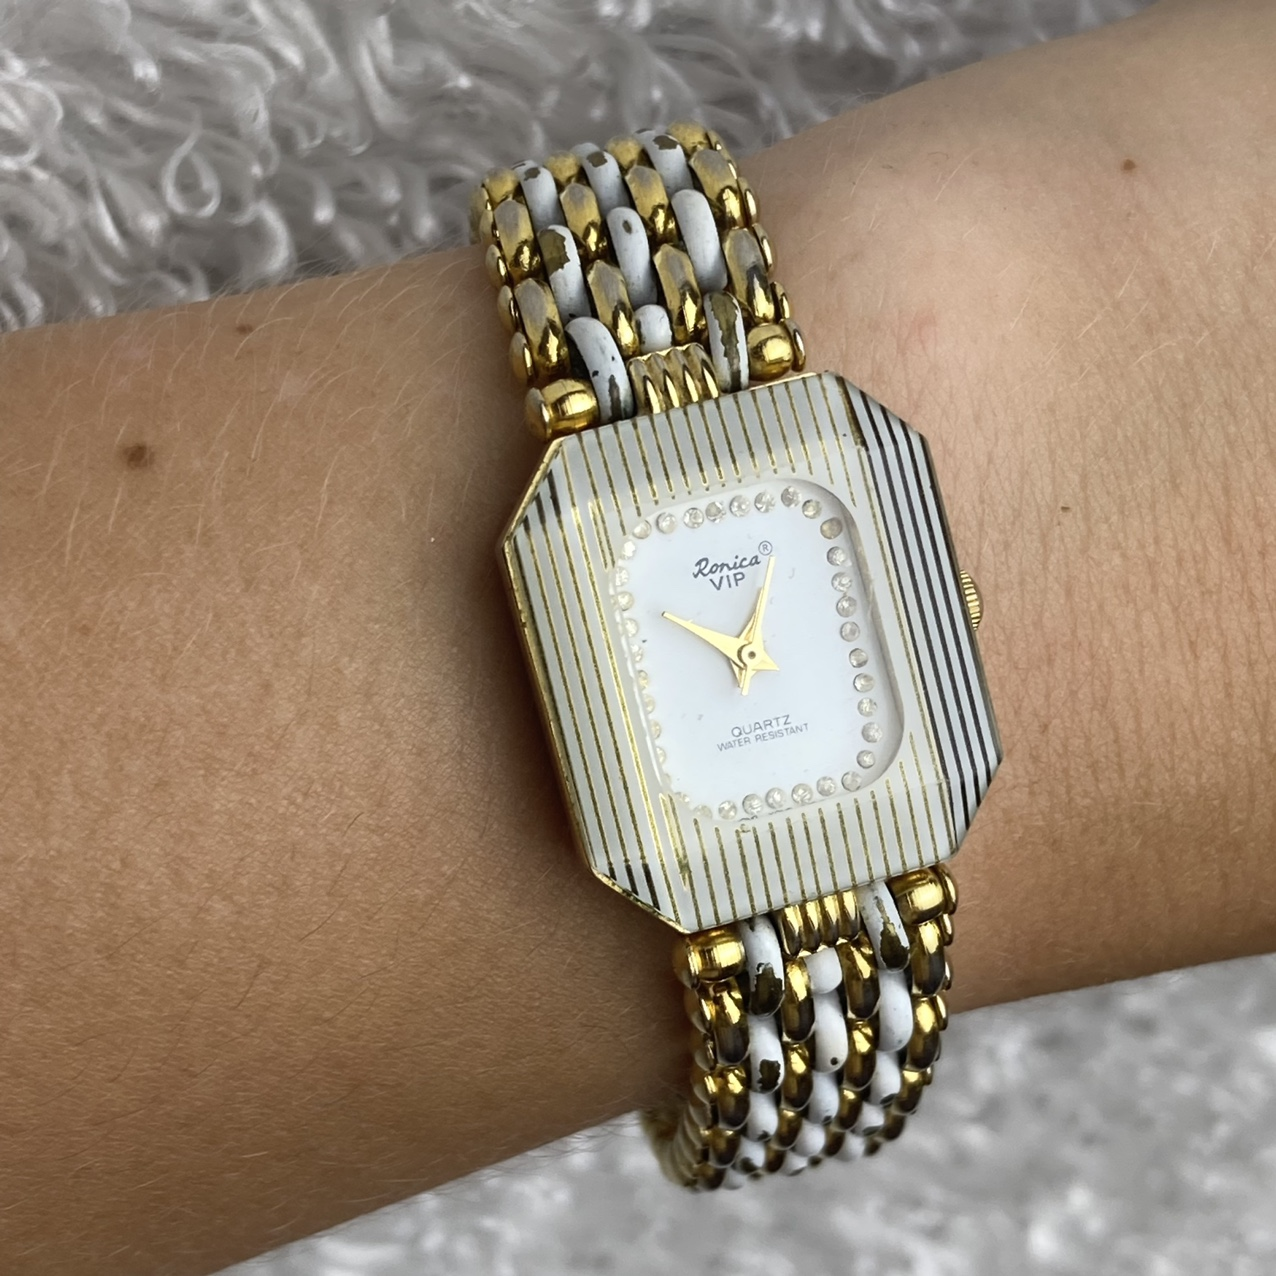 Product Image 1 - Vintage Ronica VIP watch, needs